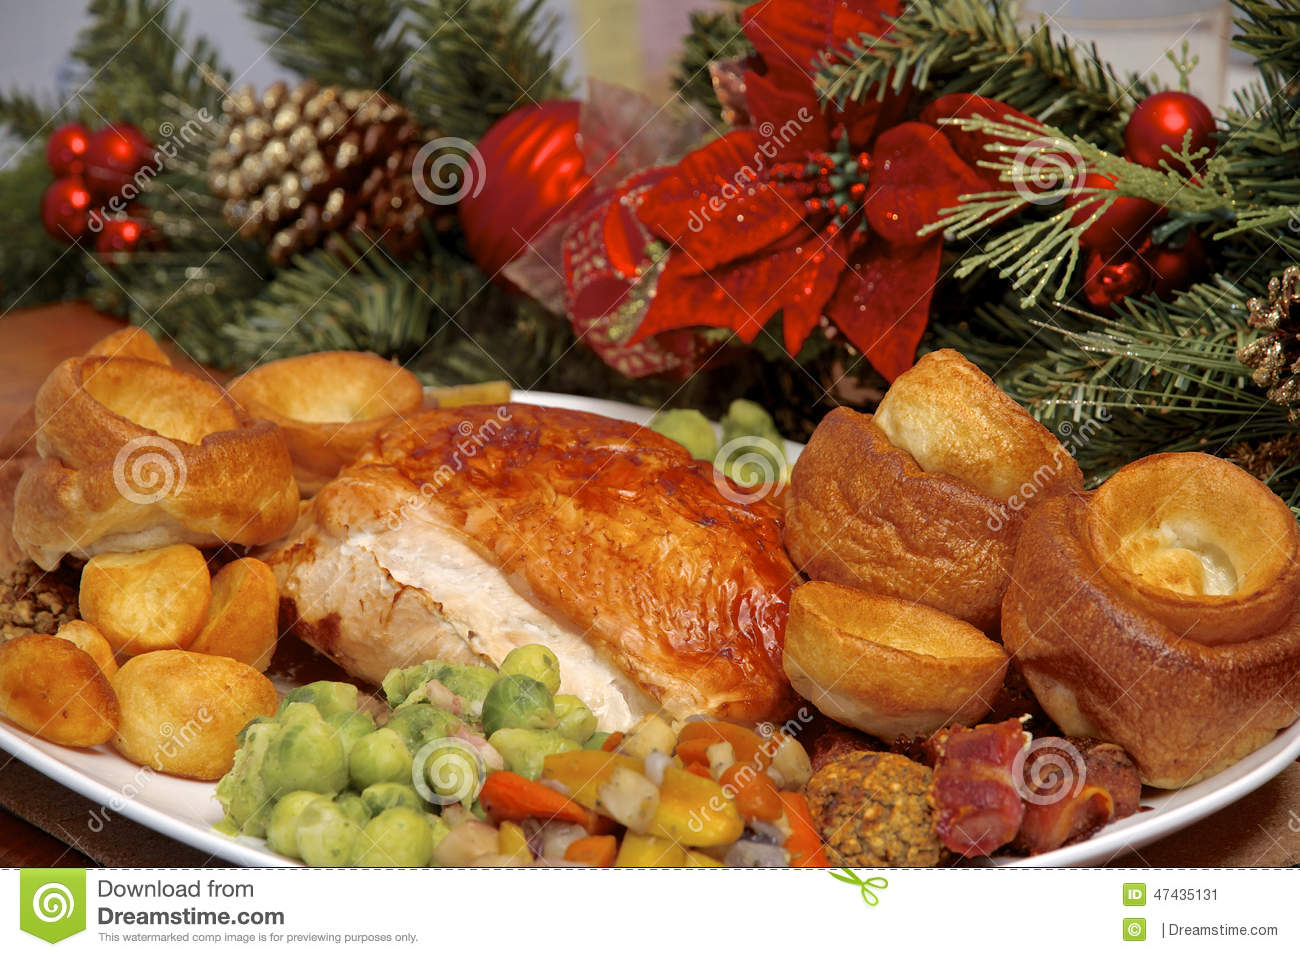 Christmas Turkey Dinner Stock Photo - Image: 47435131